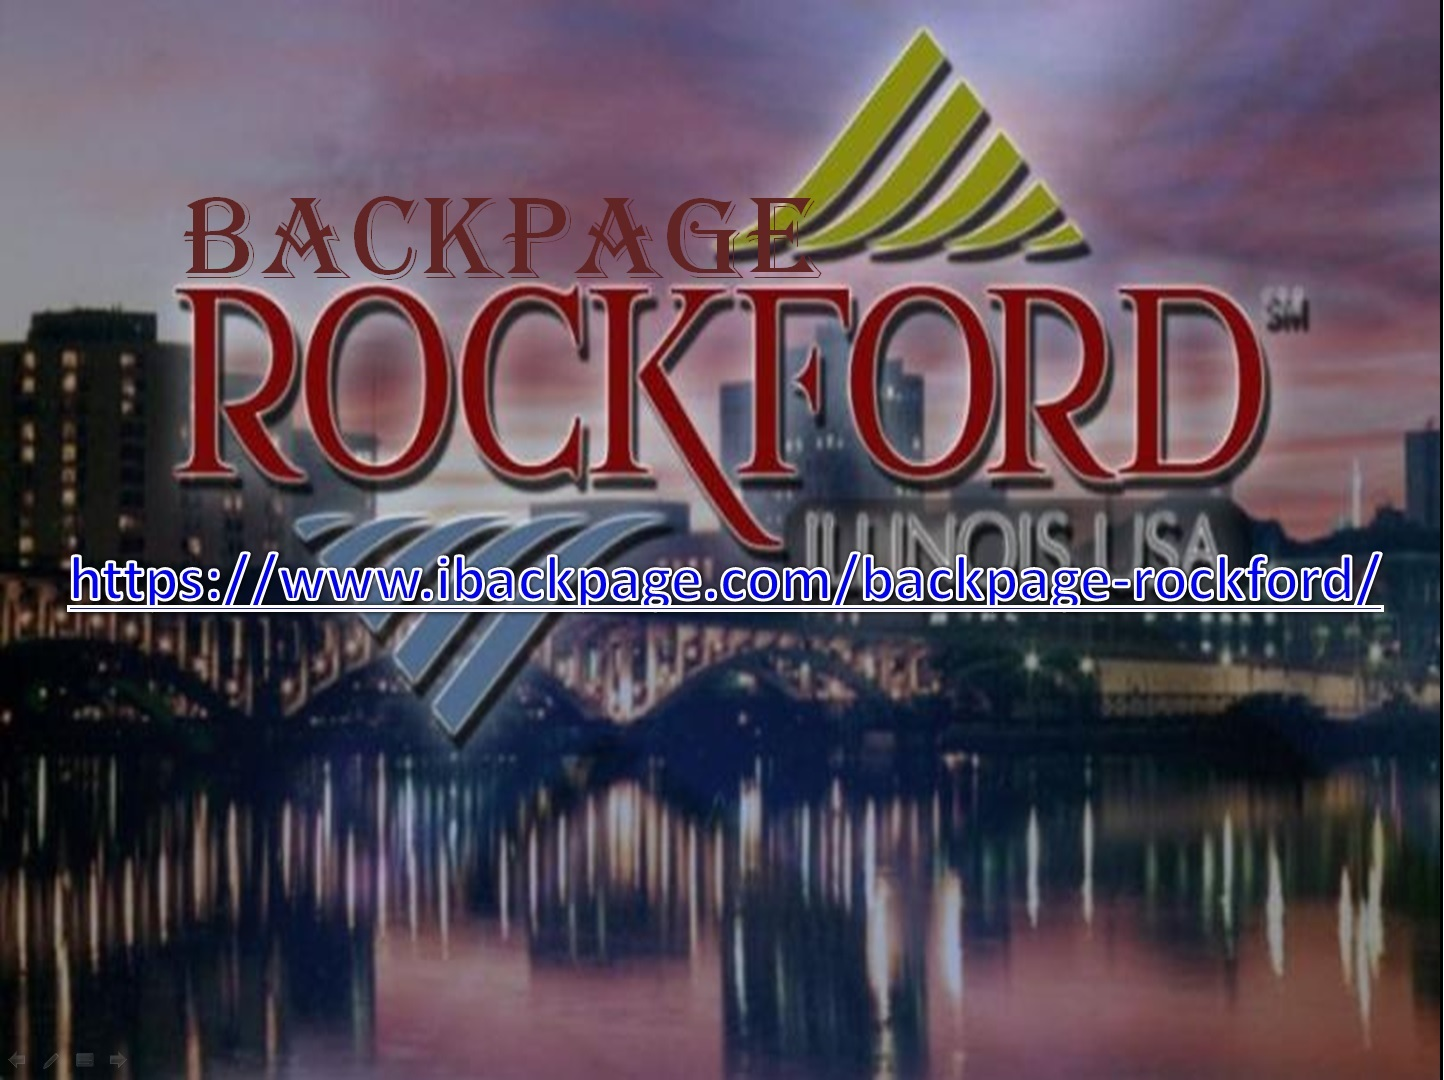 Backpage rockford jobs